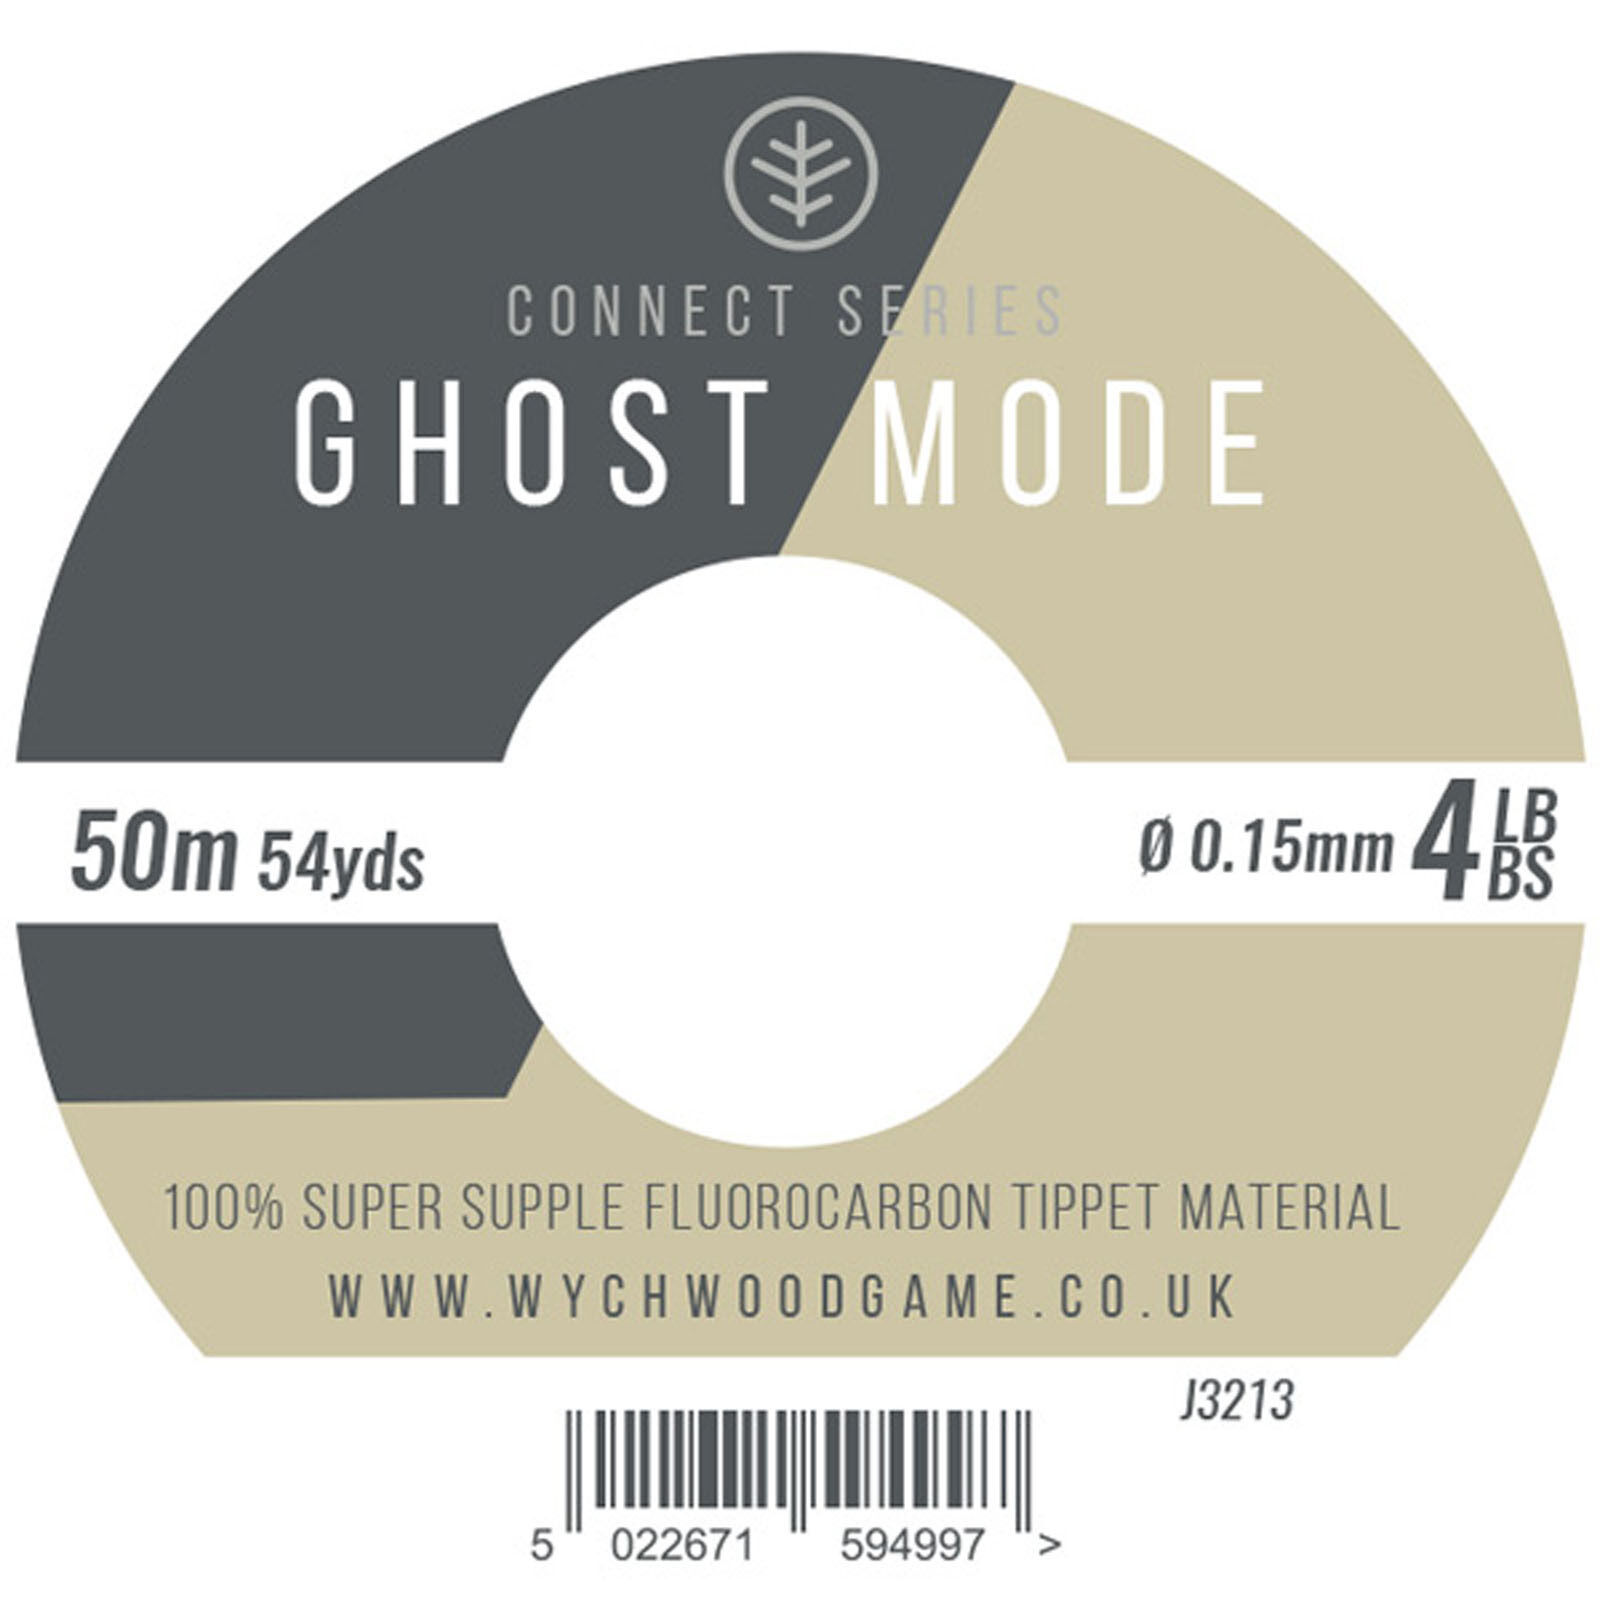 Wychwood Connect Series Ghost Mode FluGoldcarbon 50m Tippet - 3 - 10lb - 10pk